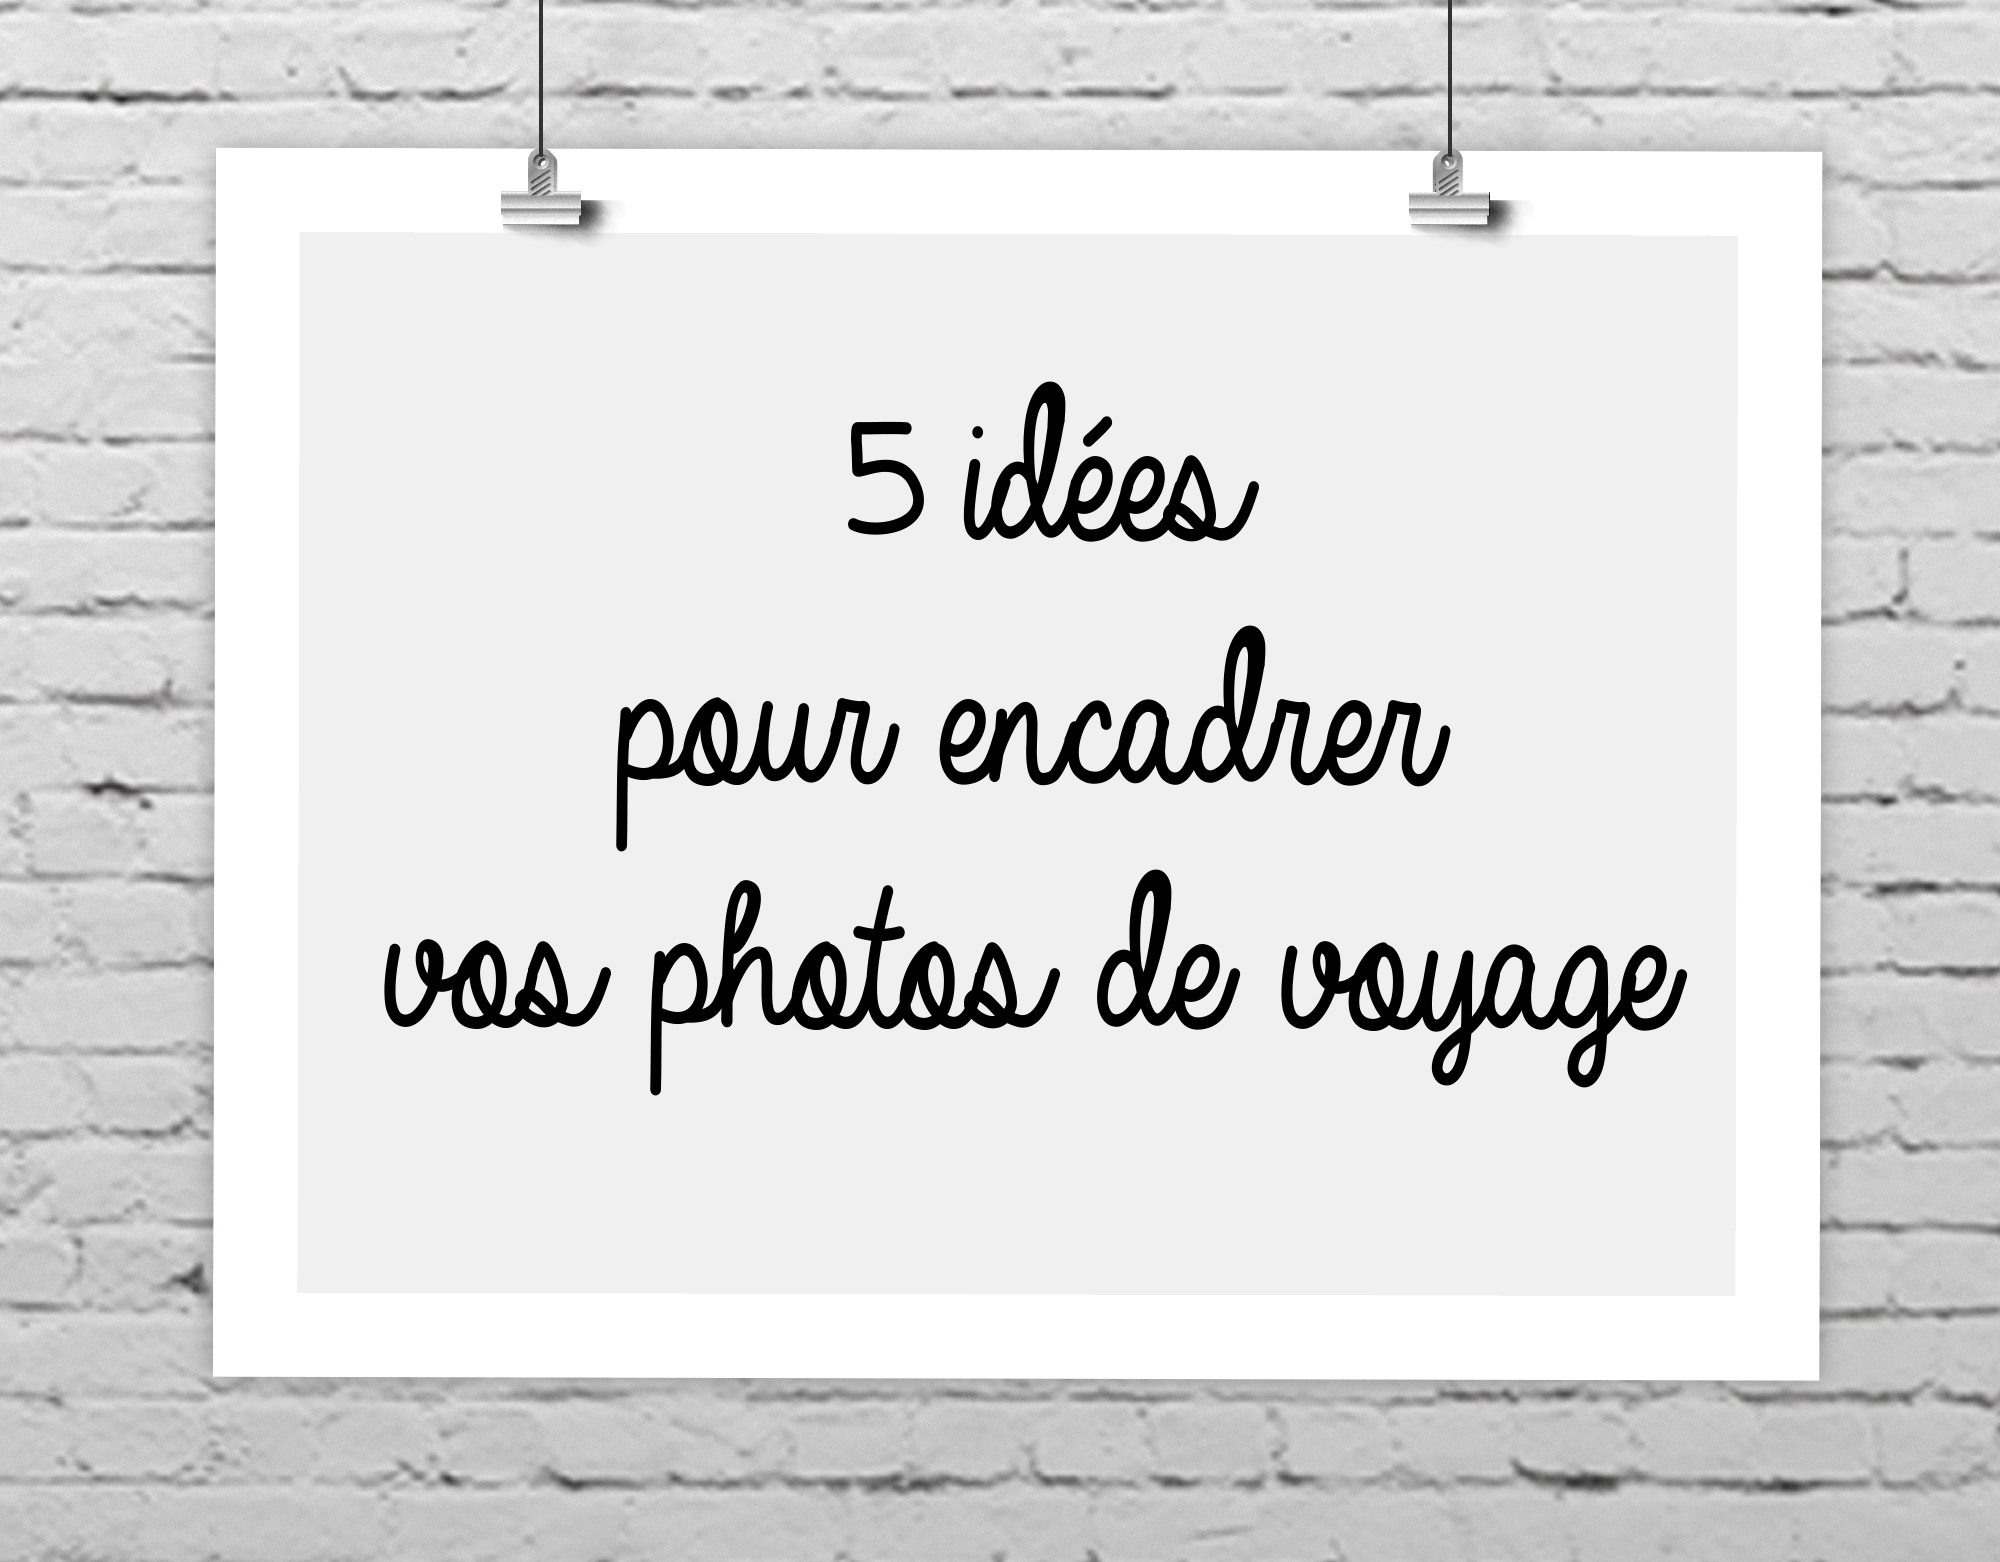 cadre photo 5 id es pour encadrer ses photos de voyage blog voyage. Black Bedroom Furniture Sets. Home Design Ideas